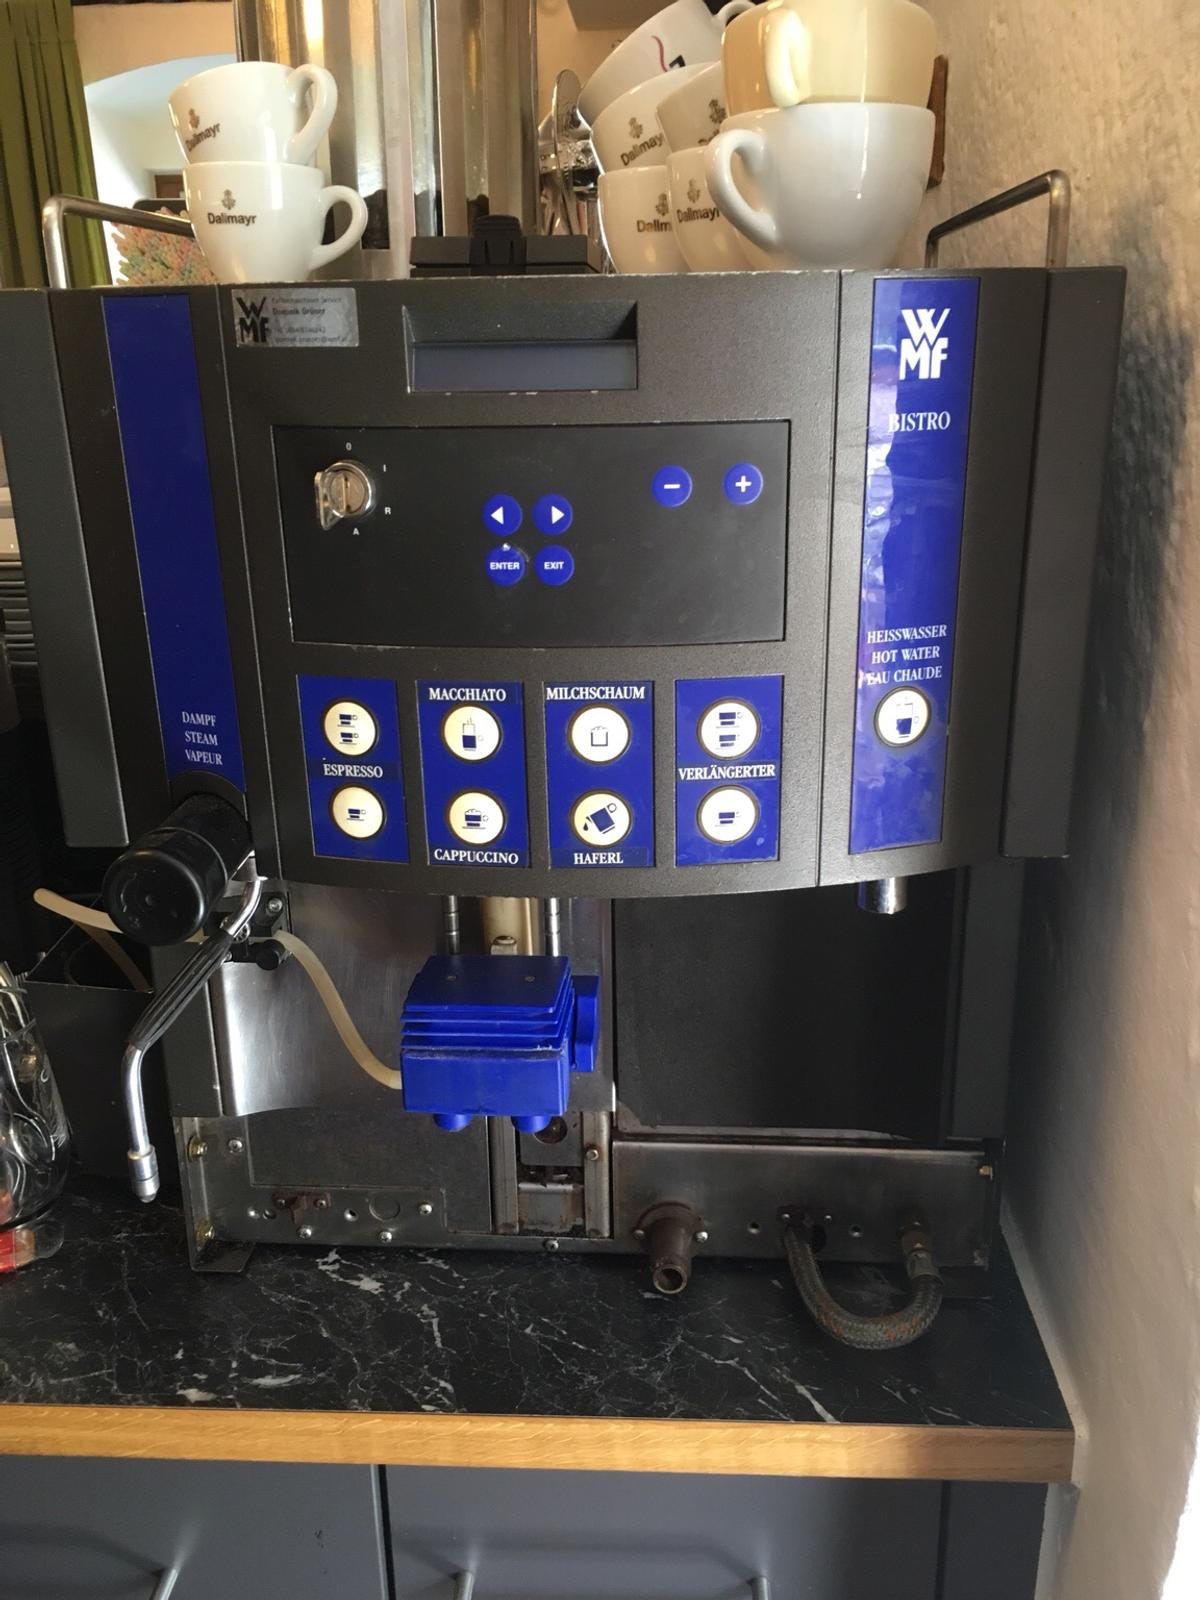 Wmf Bistro Gastronomie Kaffeemaschine In 6425 Haiming For 400 00